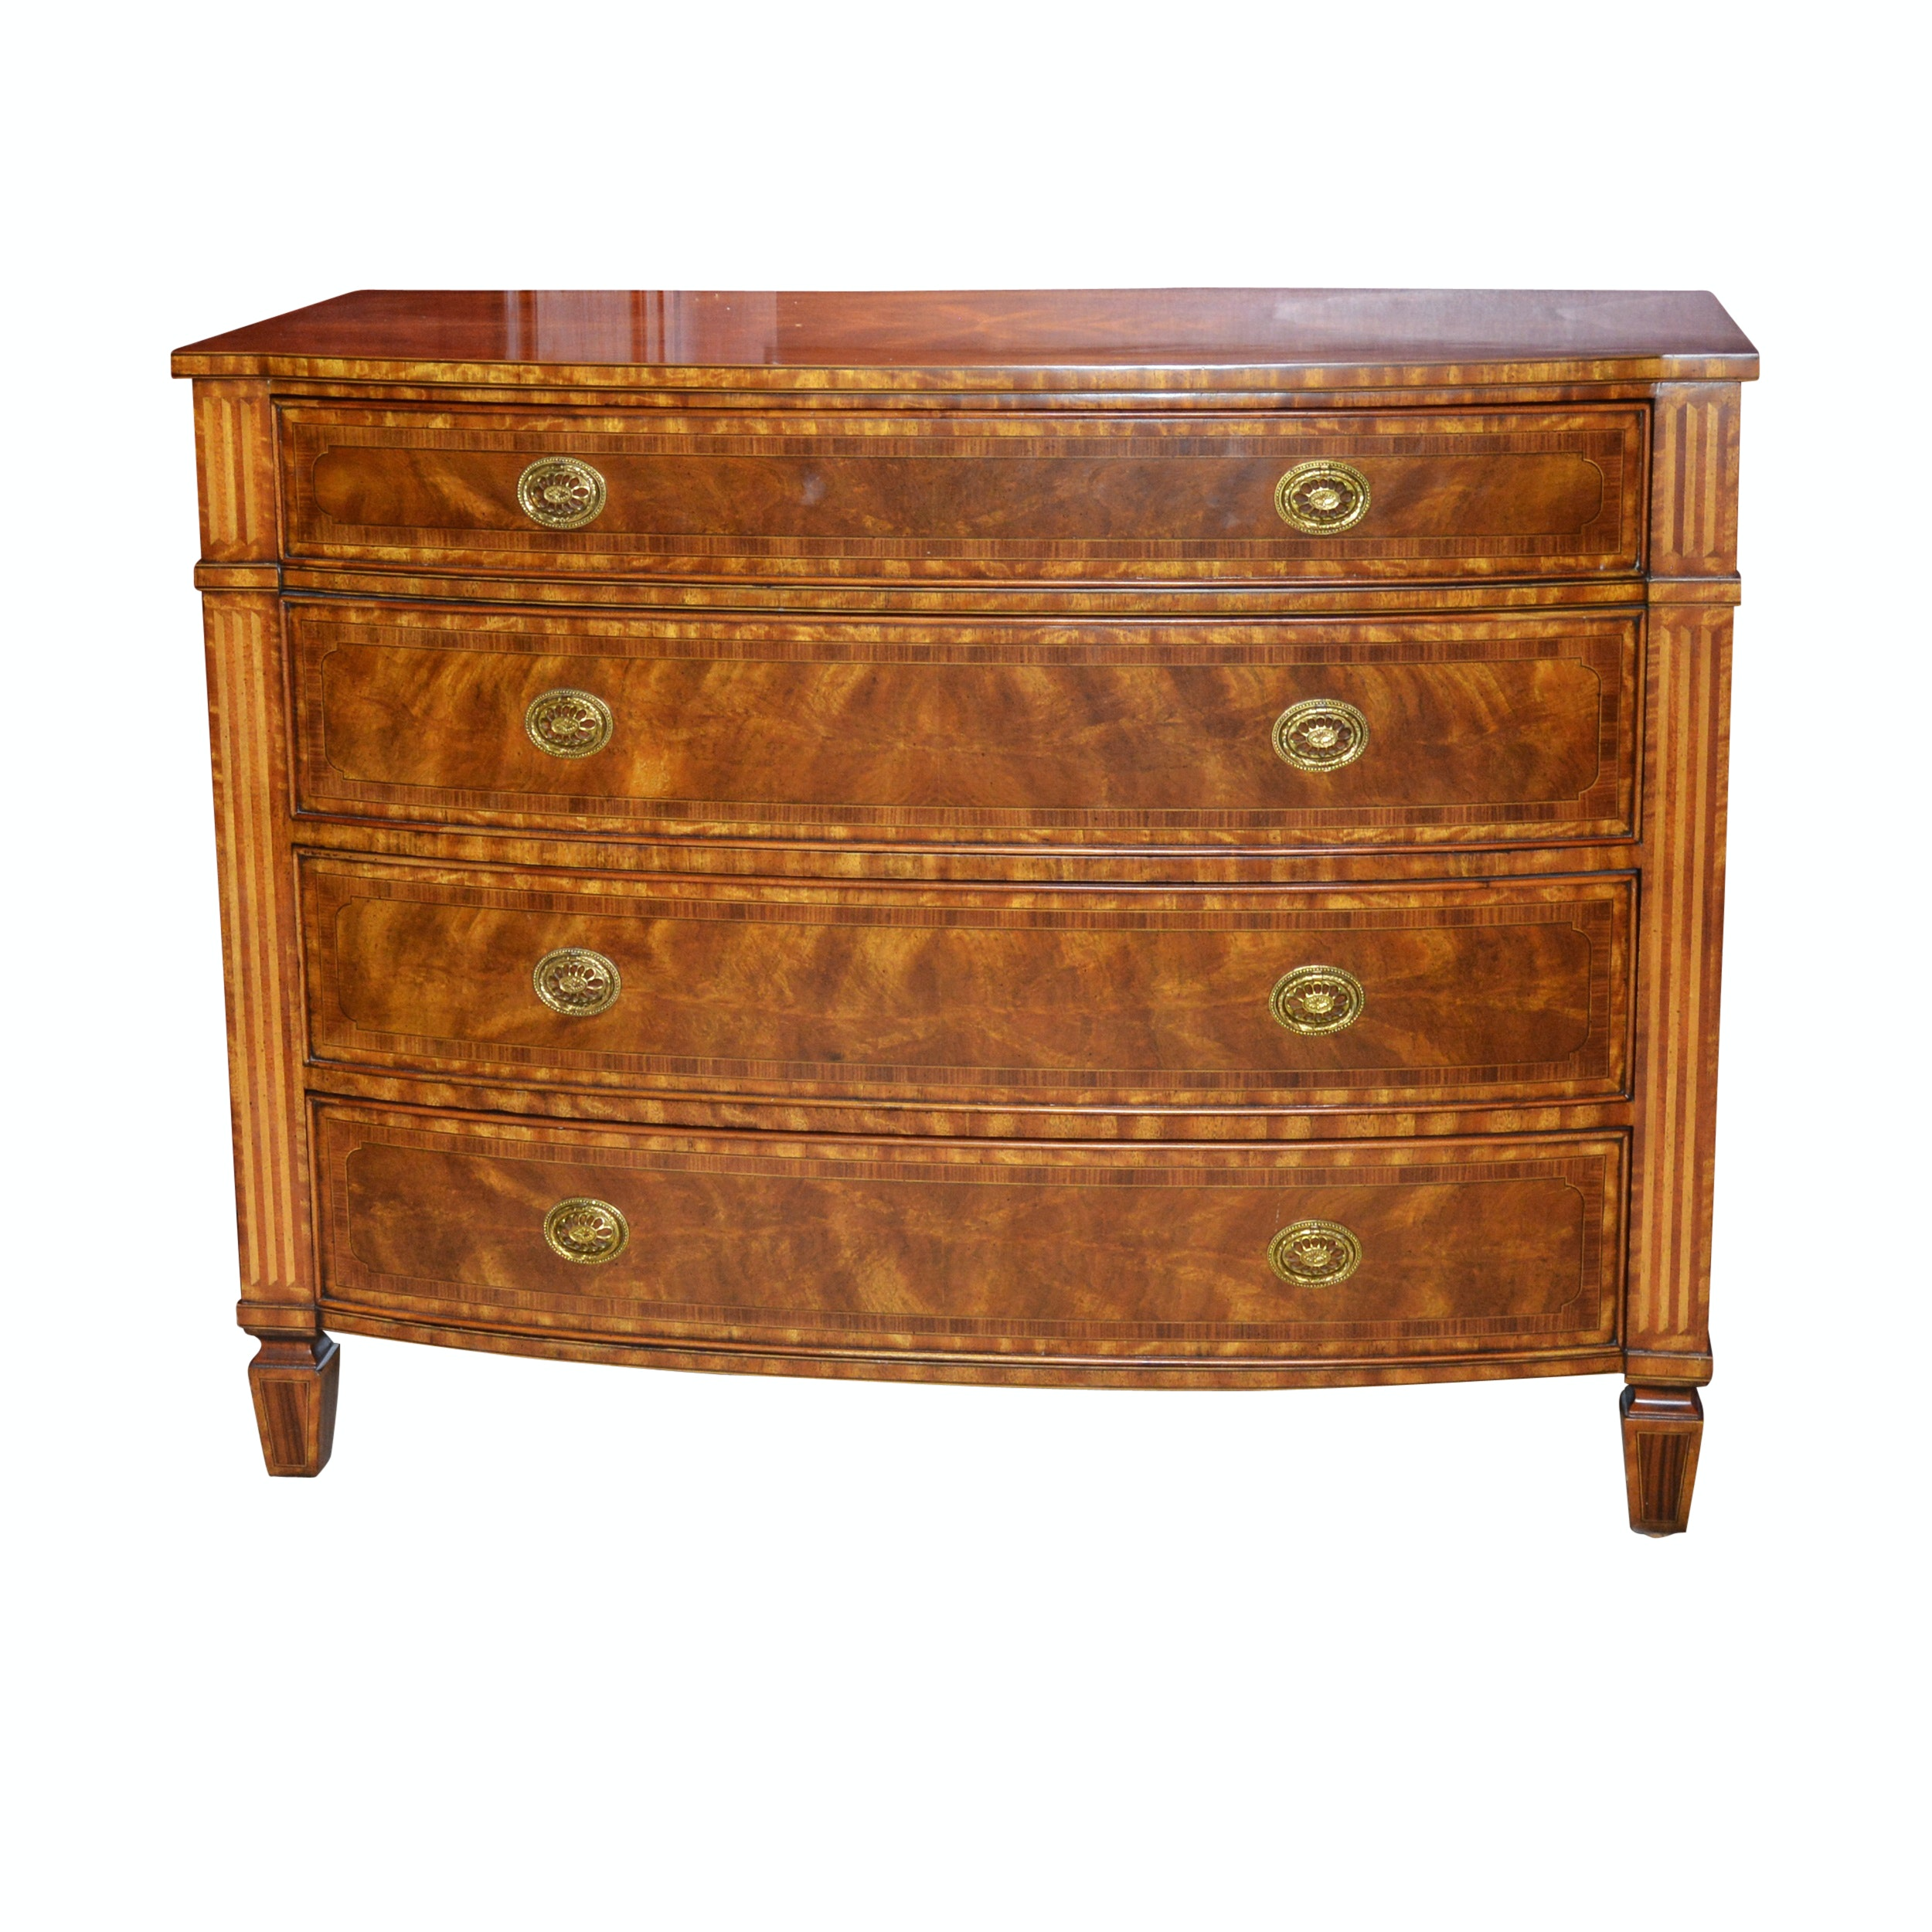 Maitland-Smith Empire Style Bow Front Chest of Drawers